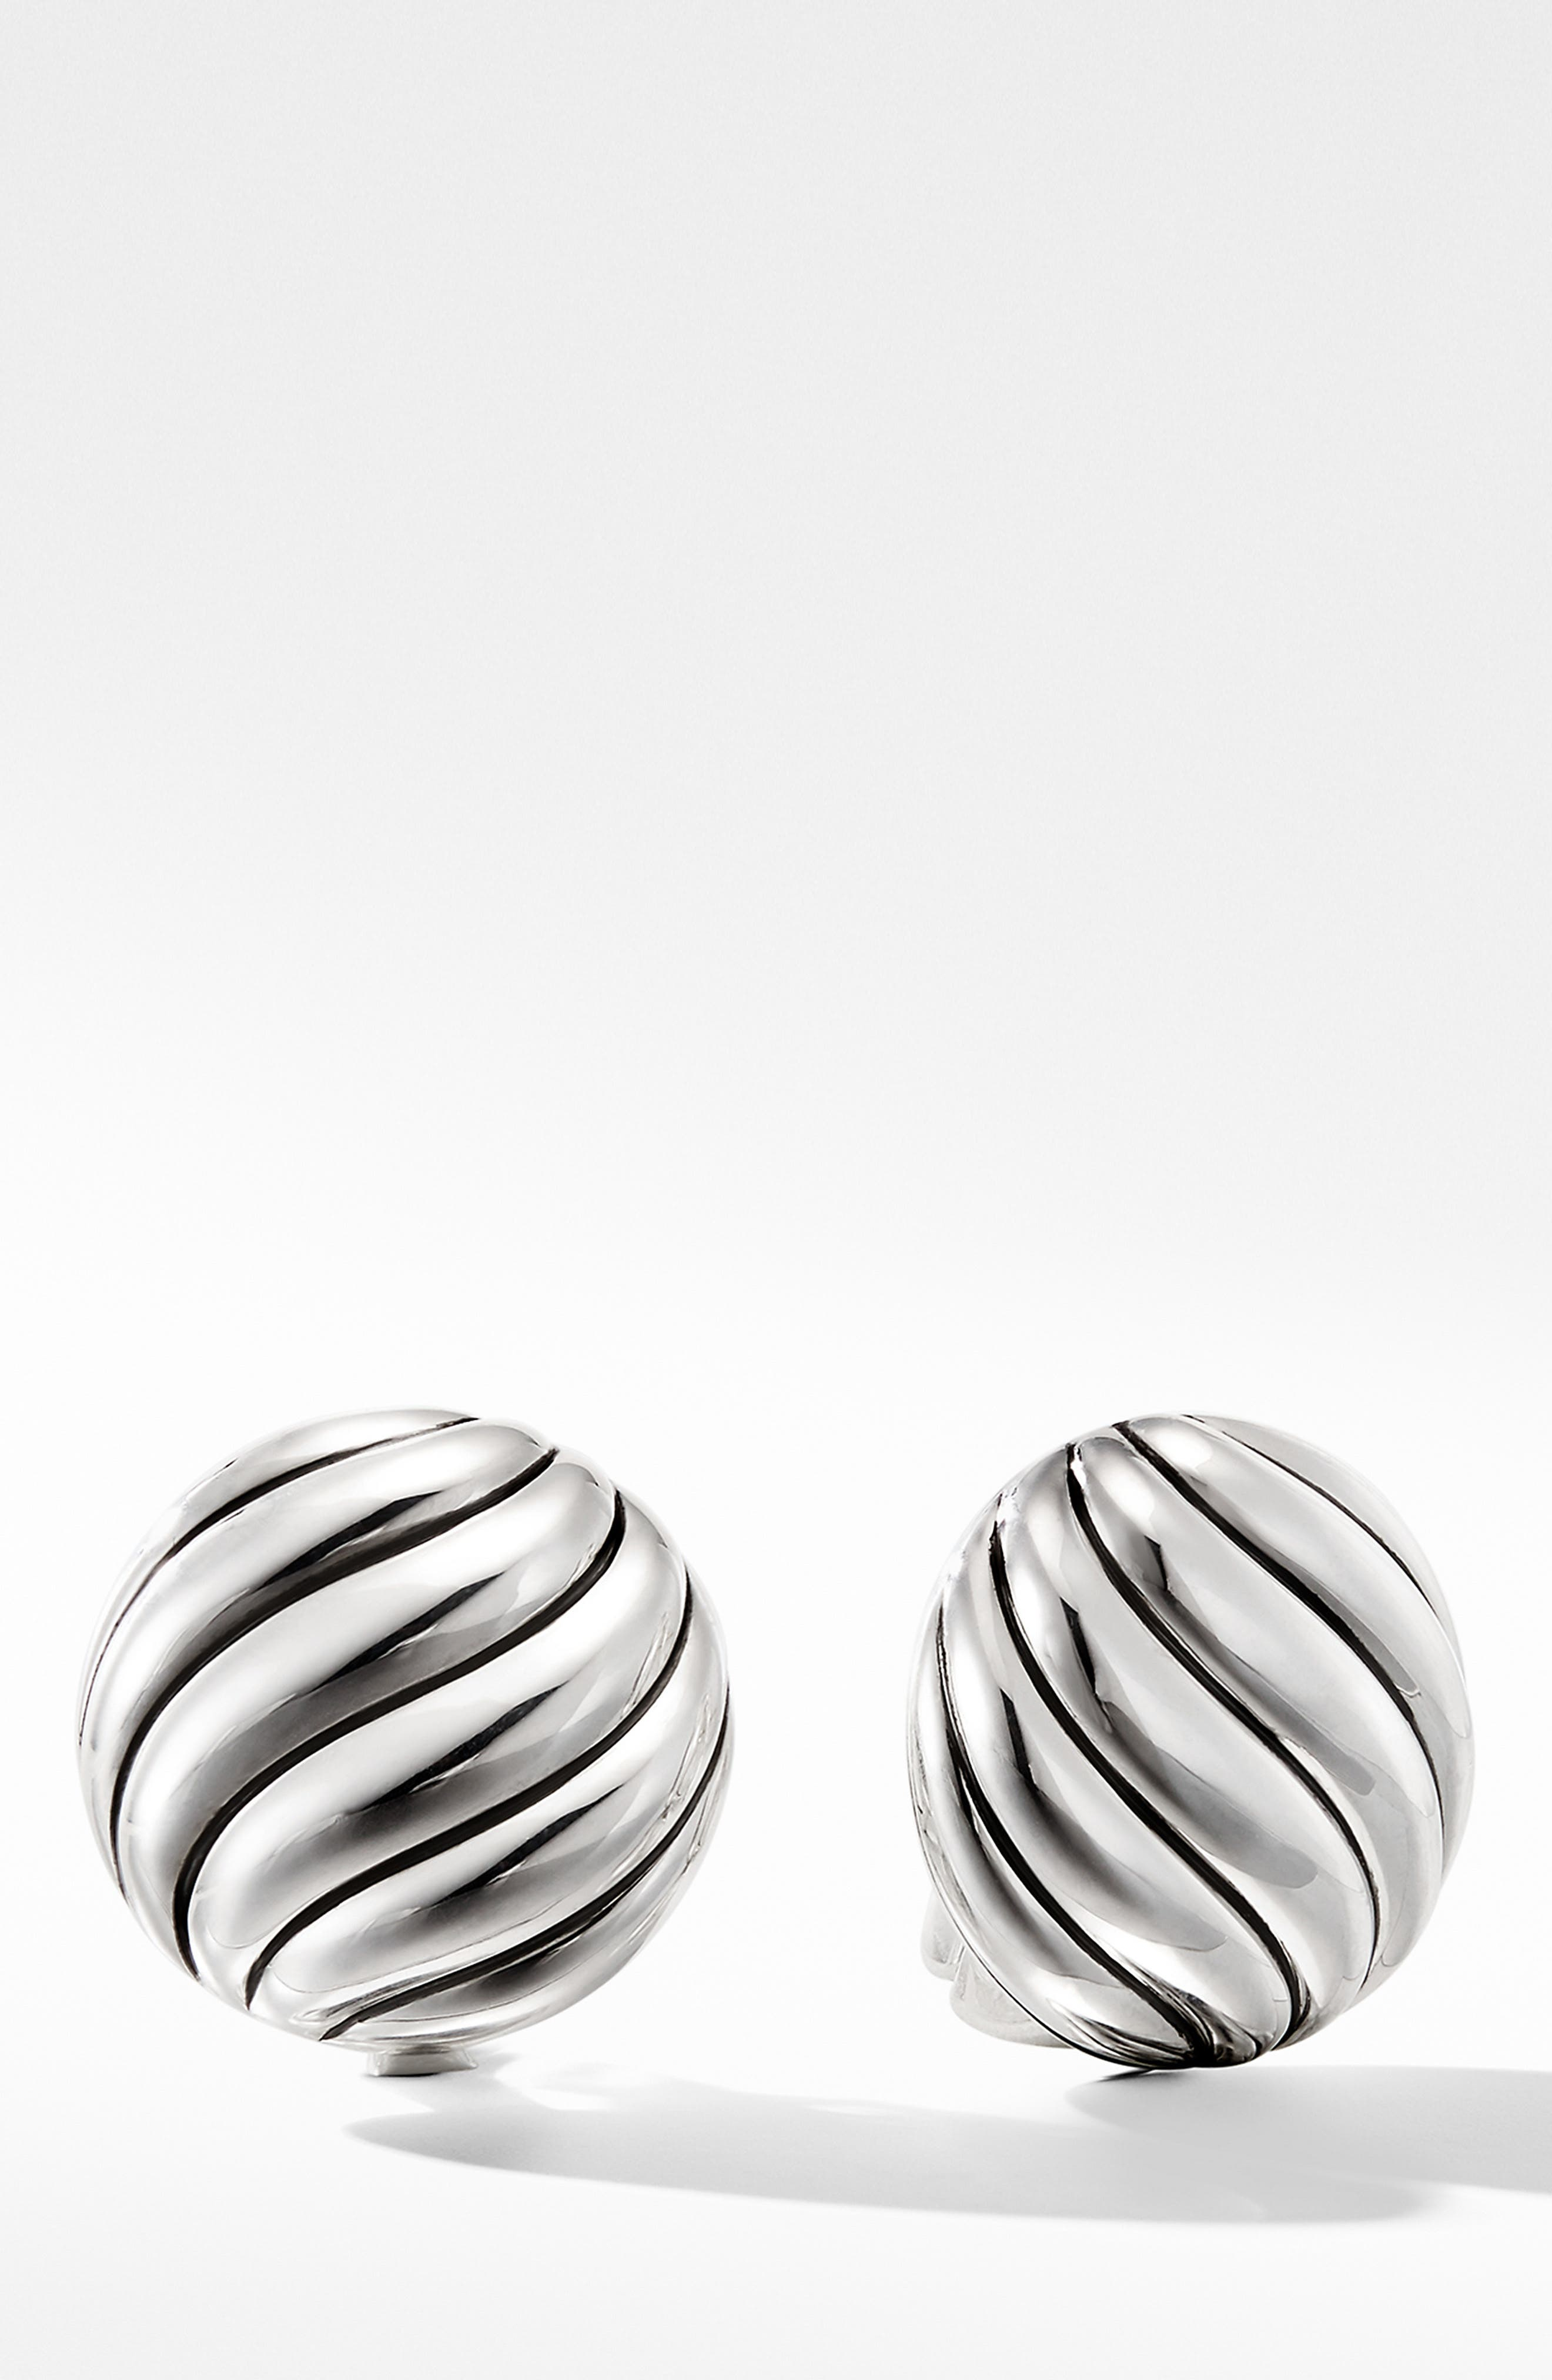 DAVID YURMAN, Cable Stud Earrings in Sterling Silver, Main thumbnail 1, color, SILVER